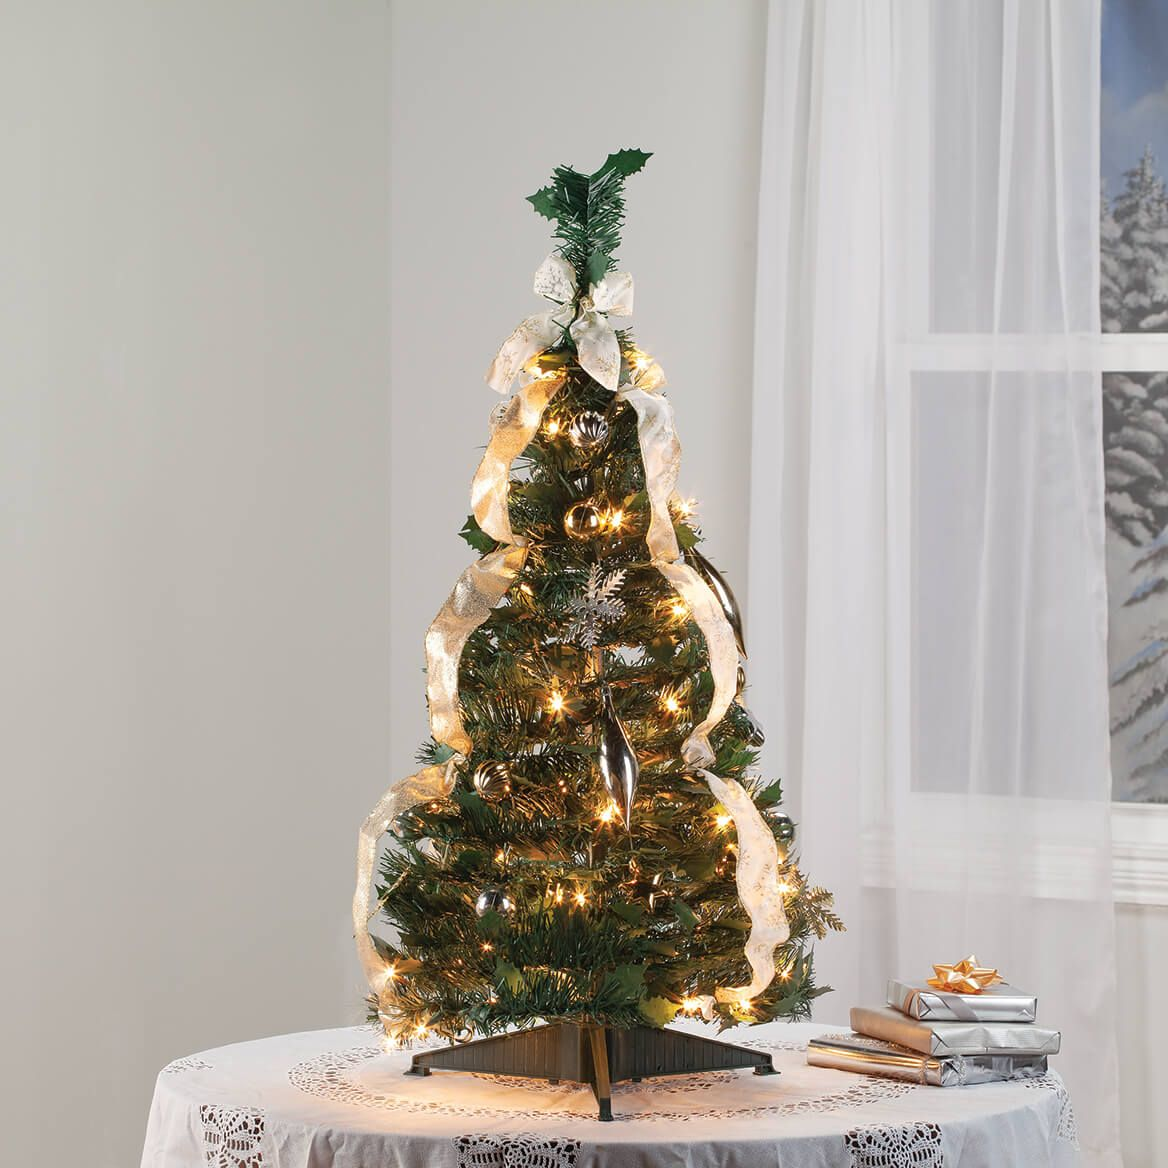 3' Silver & Gold Pull-Up Tree by Holiday Peak™-370712